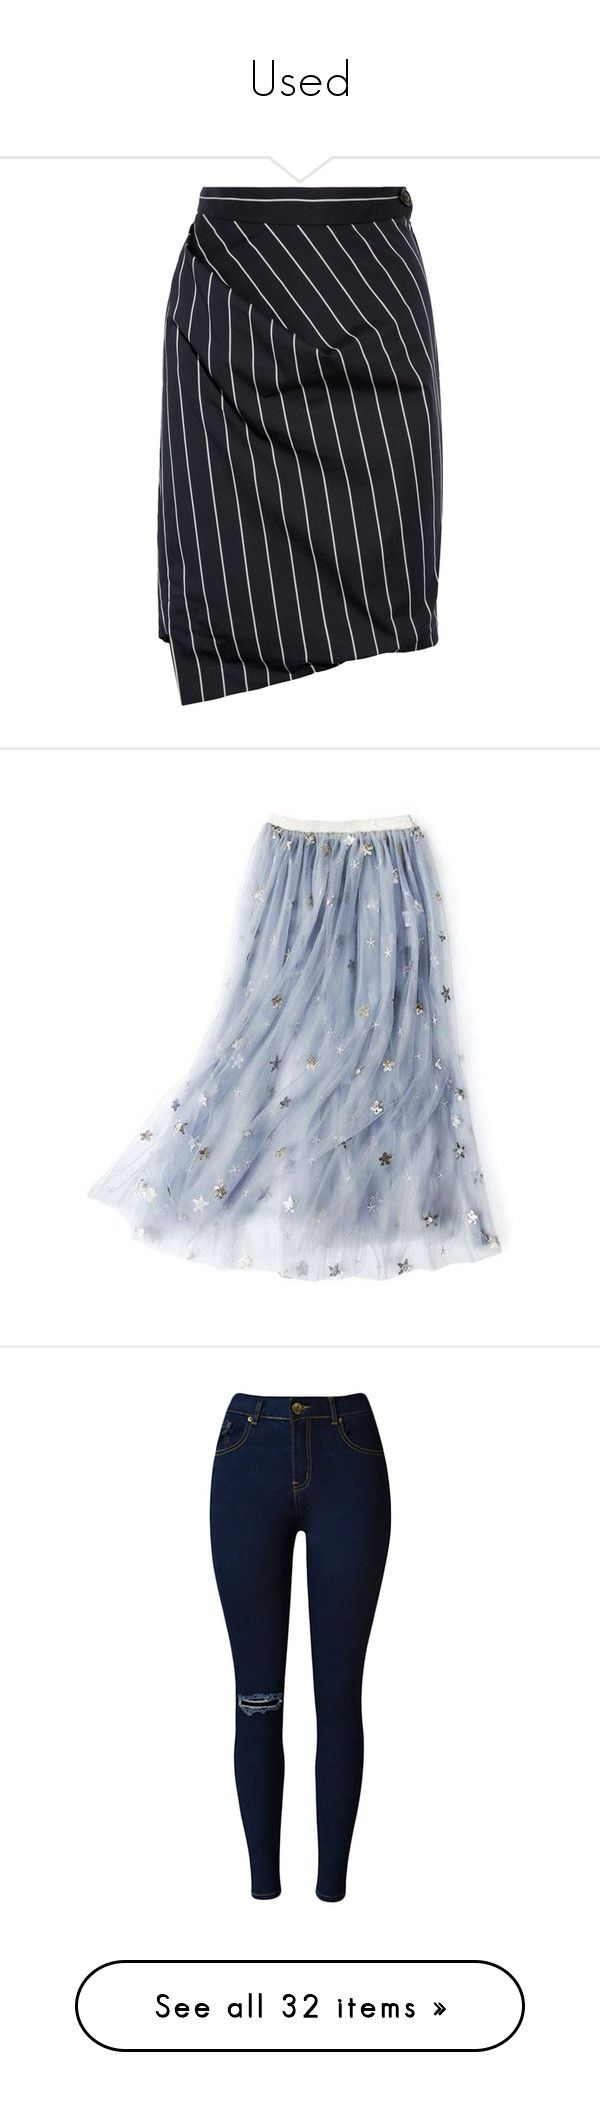 """""""Used"""" by martesaltroo on Polyvore featuring skirts, bottoms, vivienne westwood, saias, navy, blue pleated skirt, navy knee length skirt, striped pleated skirt, navy blue pleated skirt and navy striped skirt"""